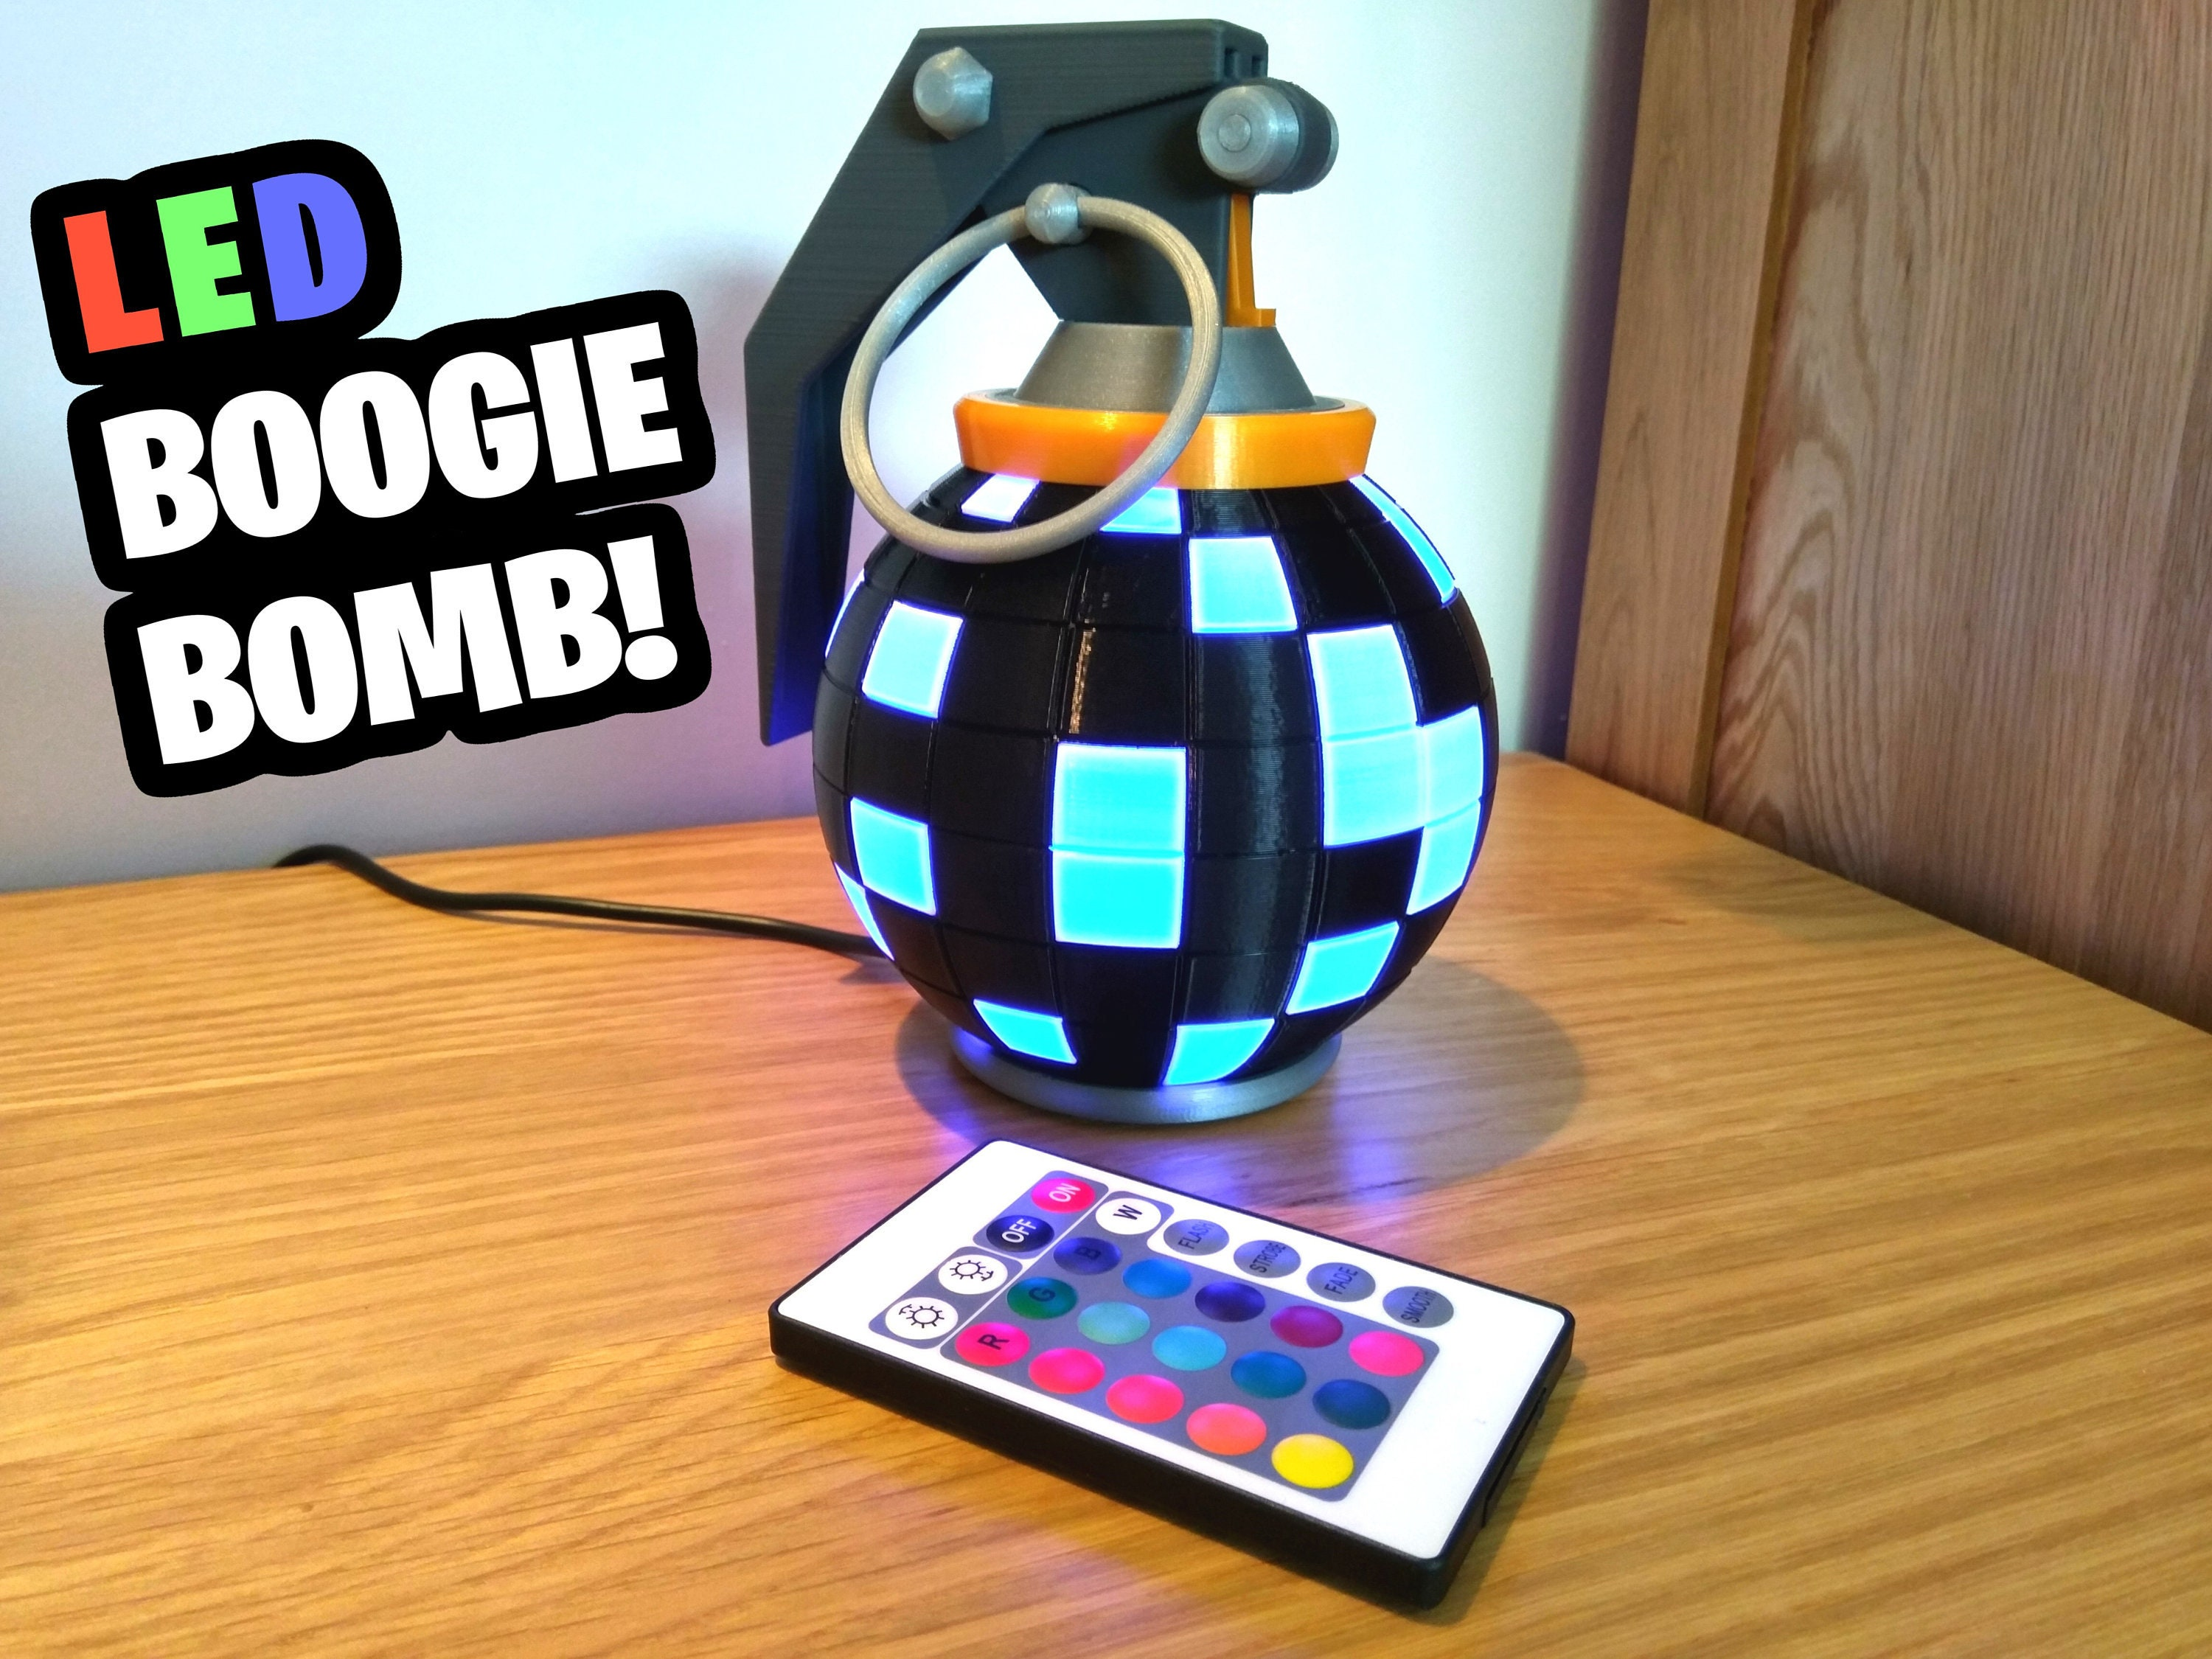 Fortnite Boogie Bomb Desk Lamp Fortnite Gift Gamer Gift